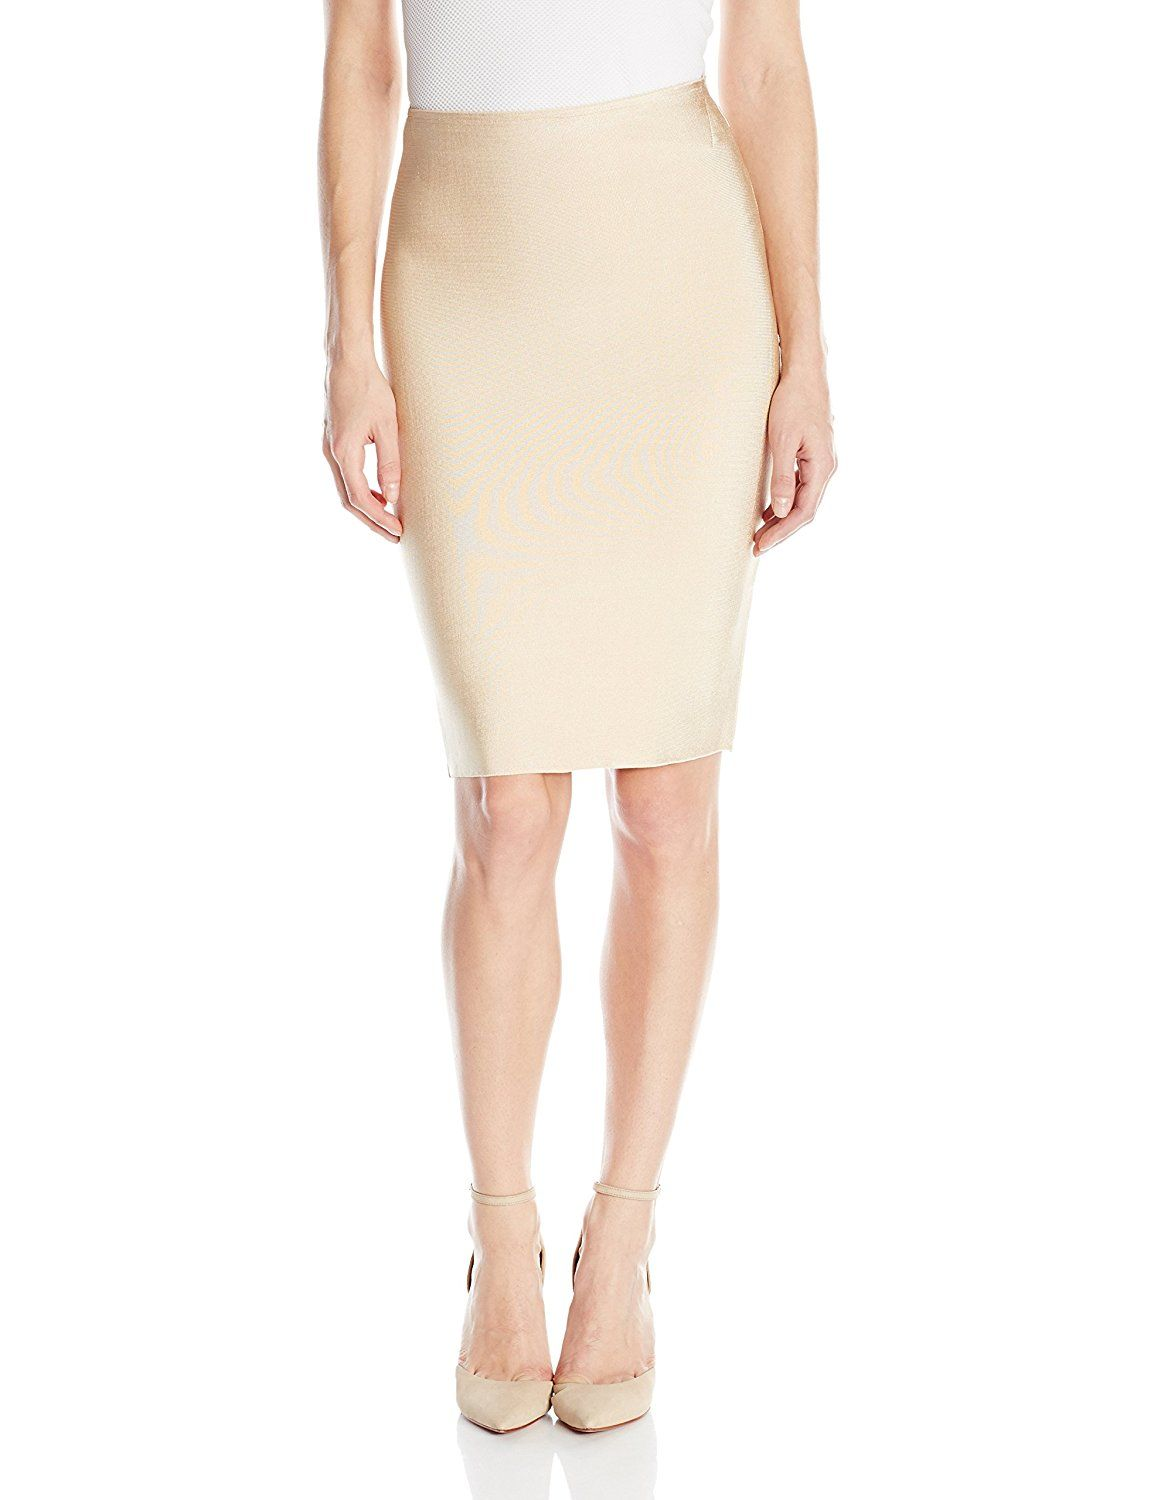 Wow Couture Women's Luxe Pencil Skirt *** This is an Amazon Affiliate link. For more information, visit image link.